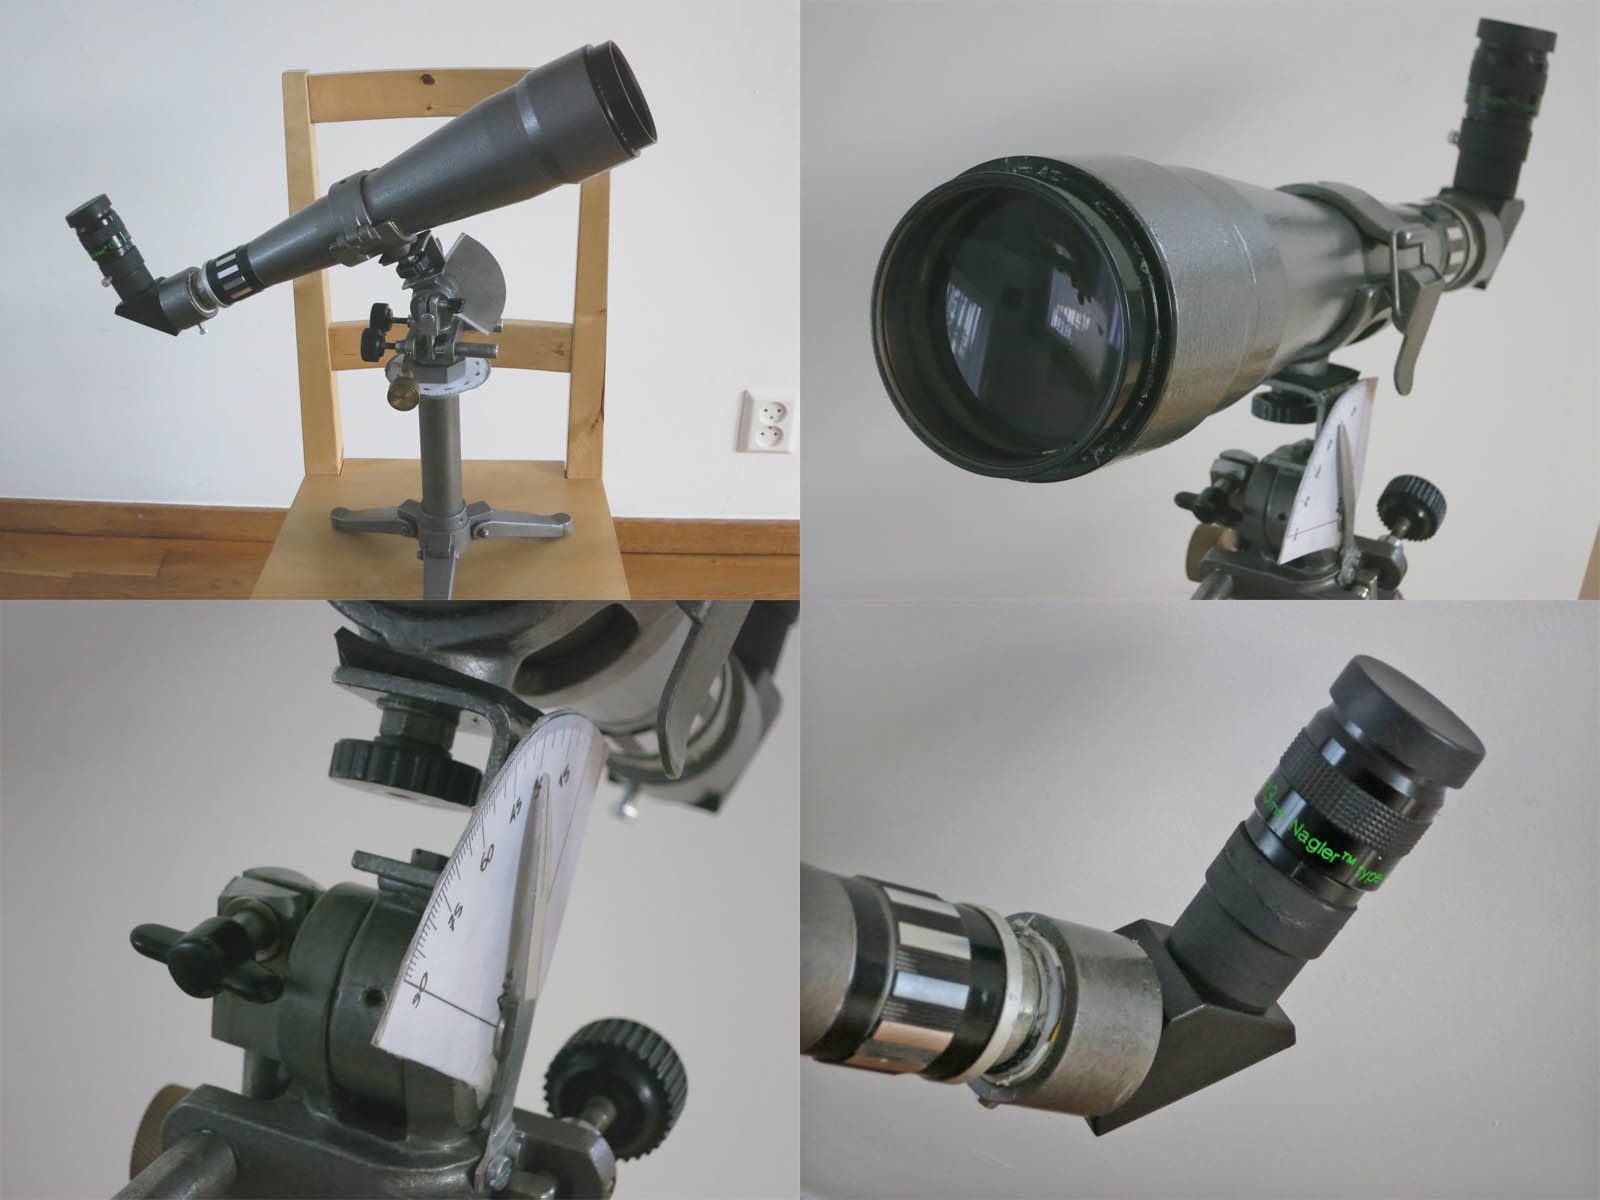 Polarex 80mm spotting scope